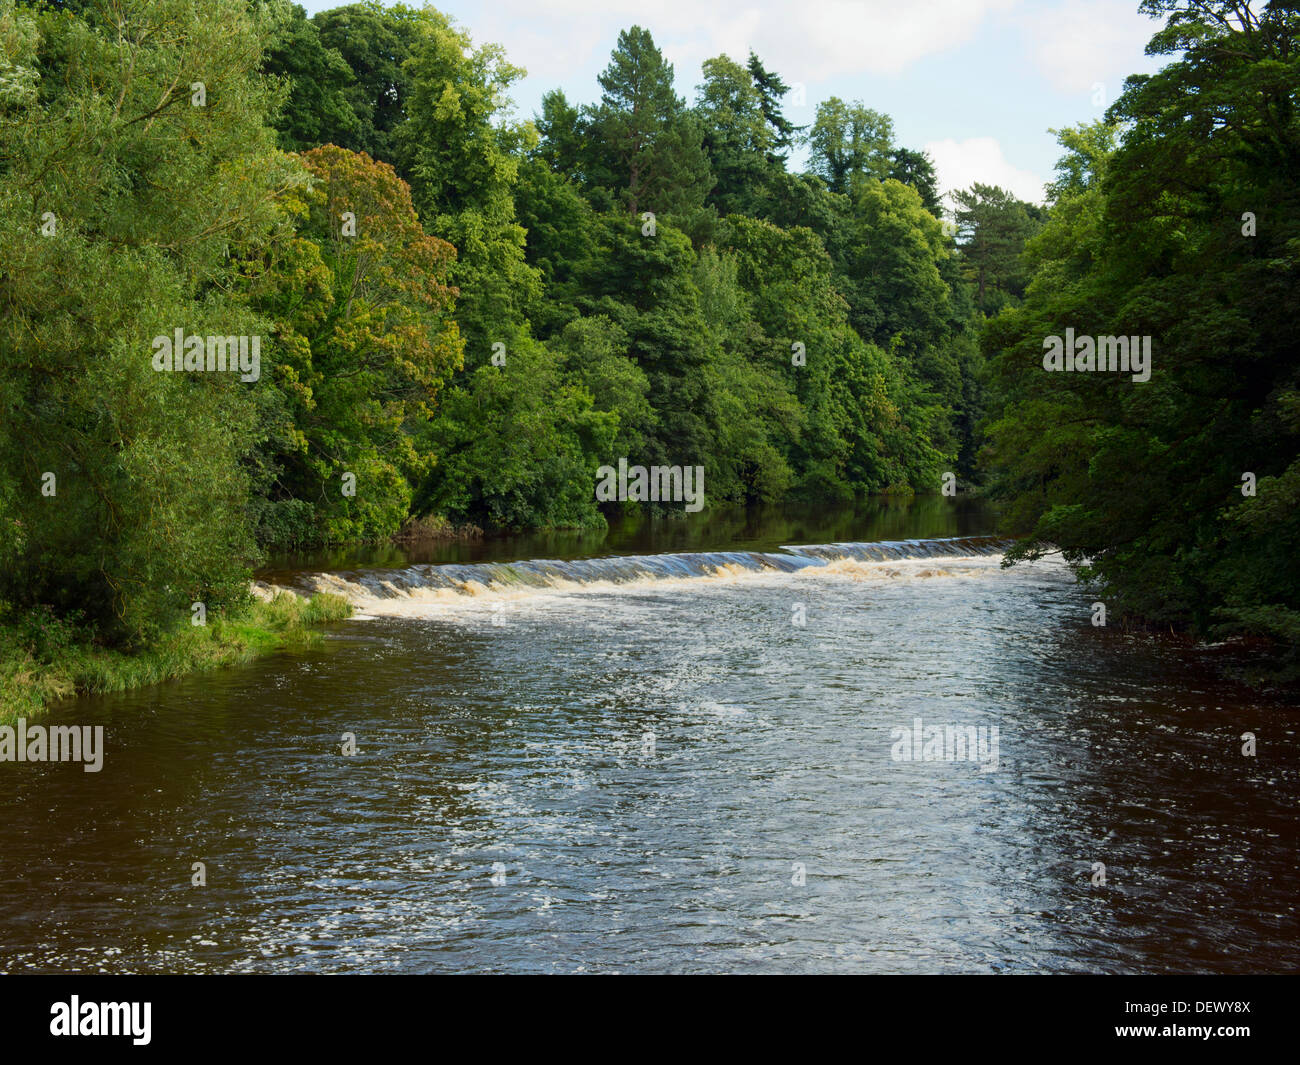 Weir in River Eden at Appleby-in-Westmorland - Stock Image